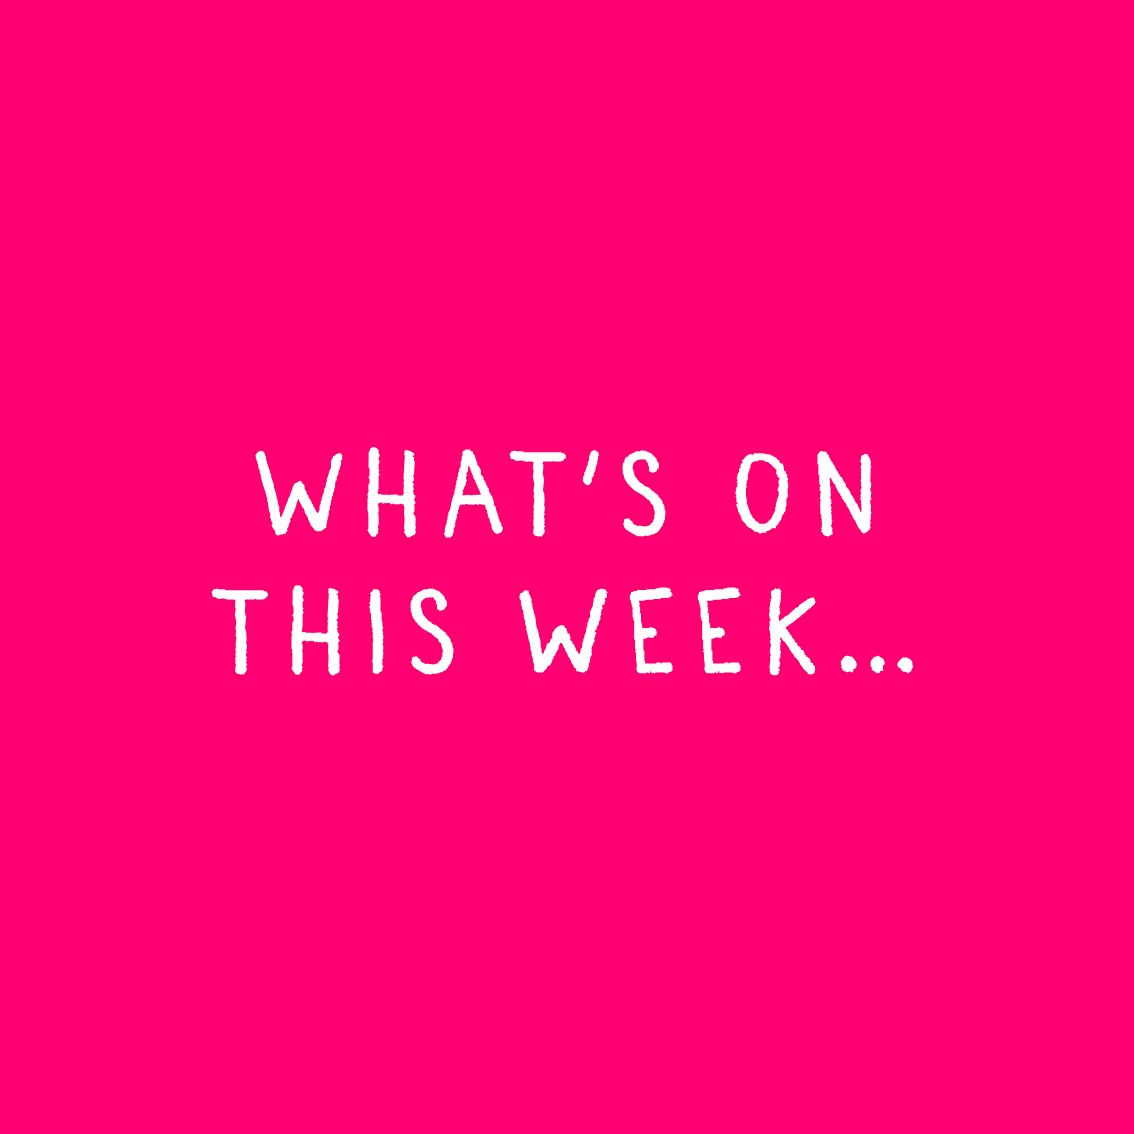 We have a variety of events on in the week ahead, including individual support which we provide every day. Call us on 01224 645928 to find out what's on and how we can help you 🧡